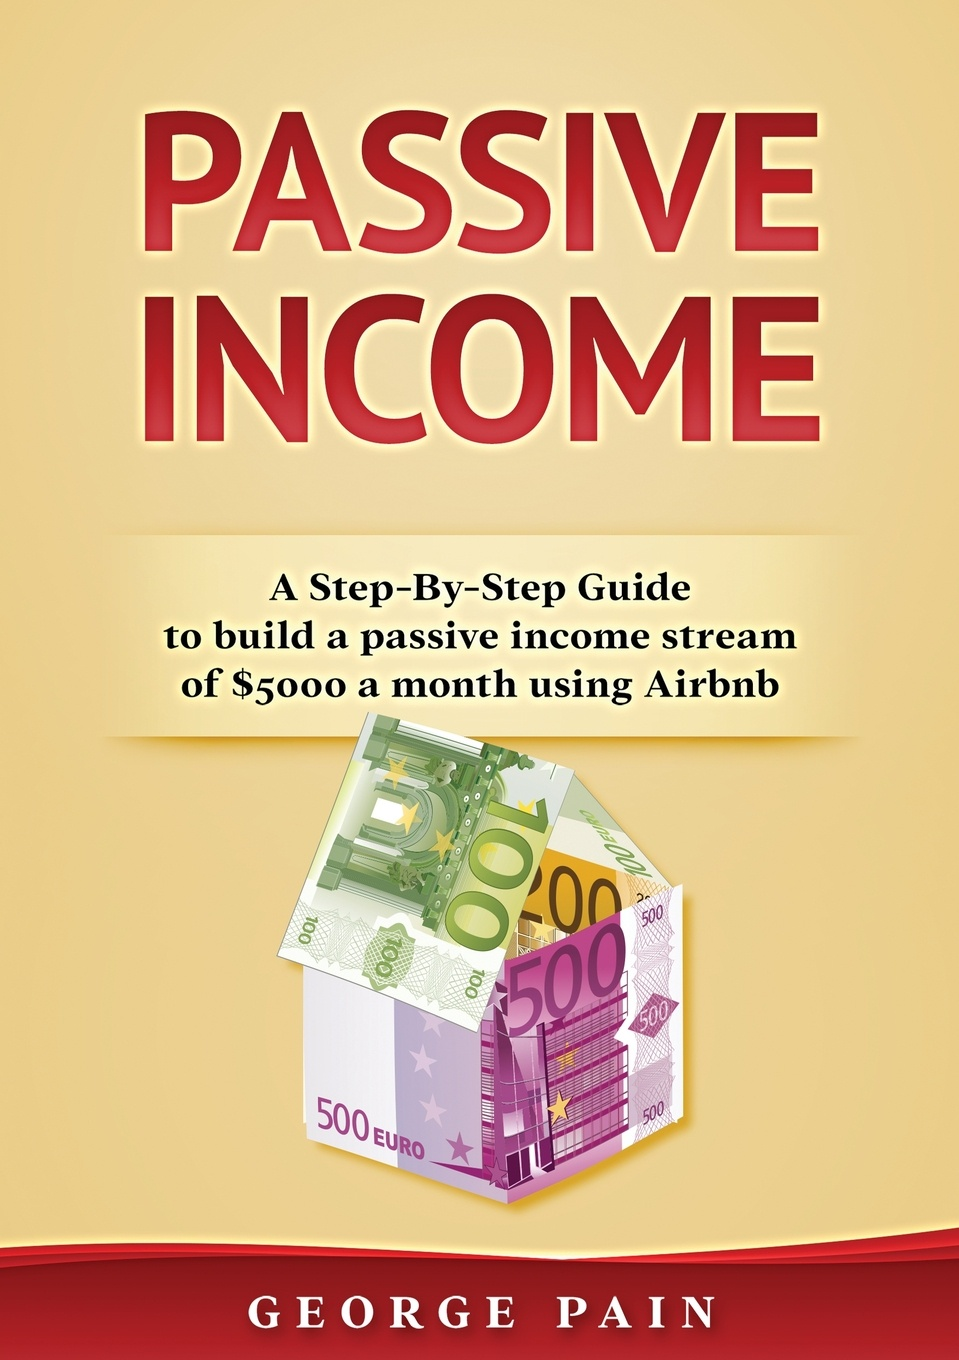 George Pain Passive Income. A Step-By-Step Guide to build a passive income stream of .5000 a month using Airbnb richard giannamore the high income mortgage originator sales strategies and practices to build your client base and become a top producer